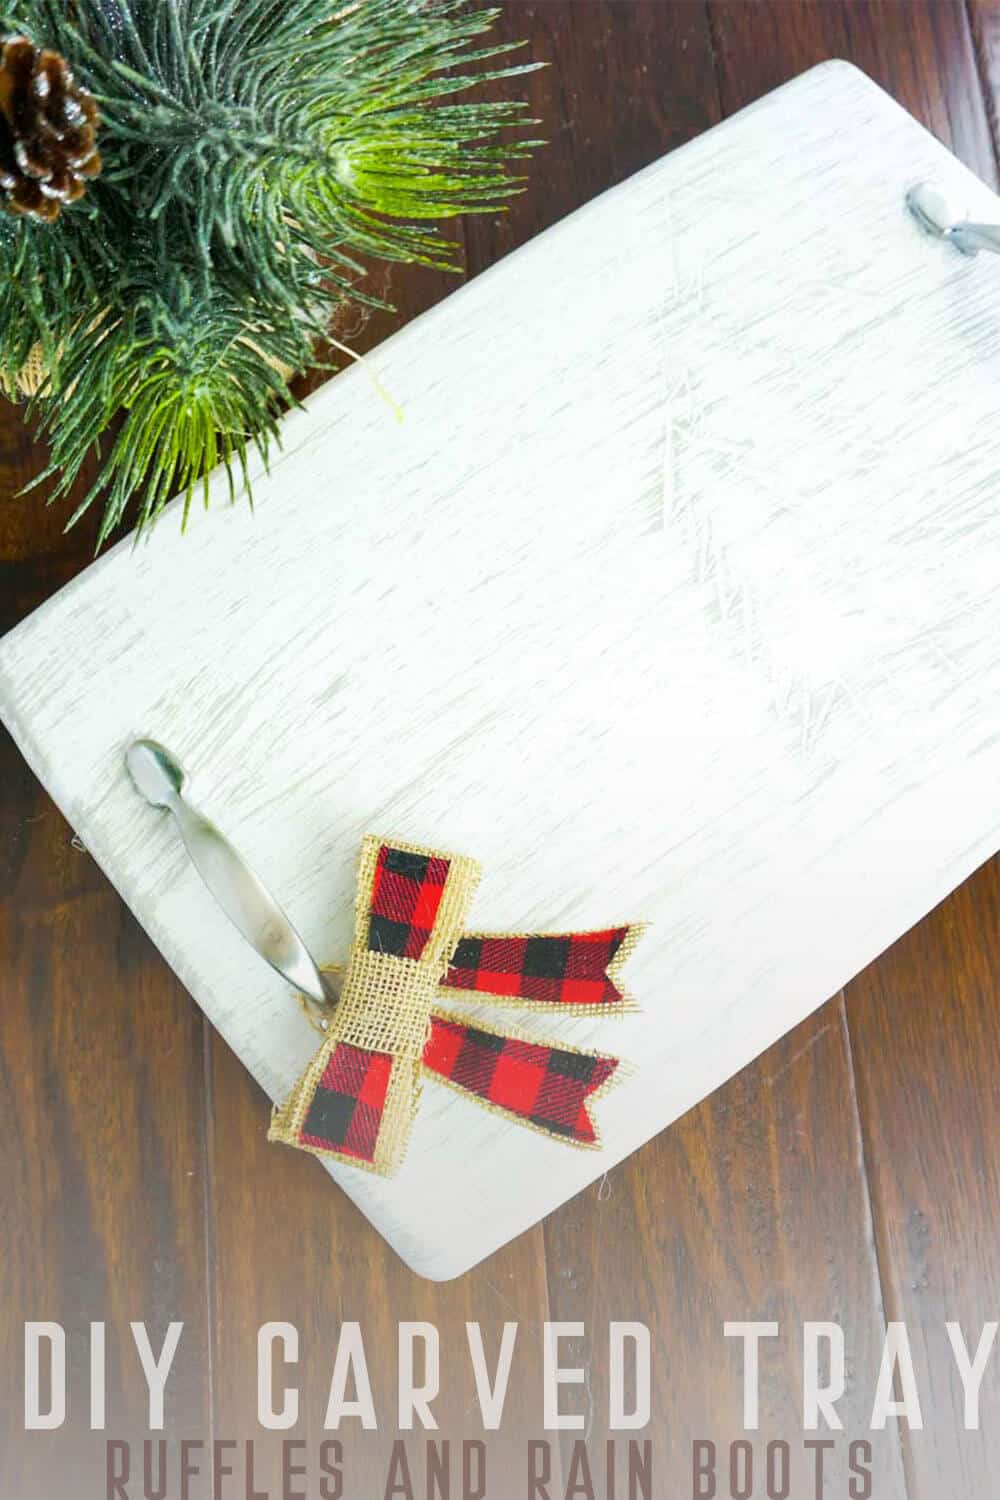 DIY Carved Tray for Christmas on a dark wood background with text which reads DIY Carved Tray